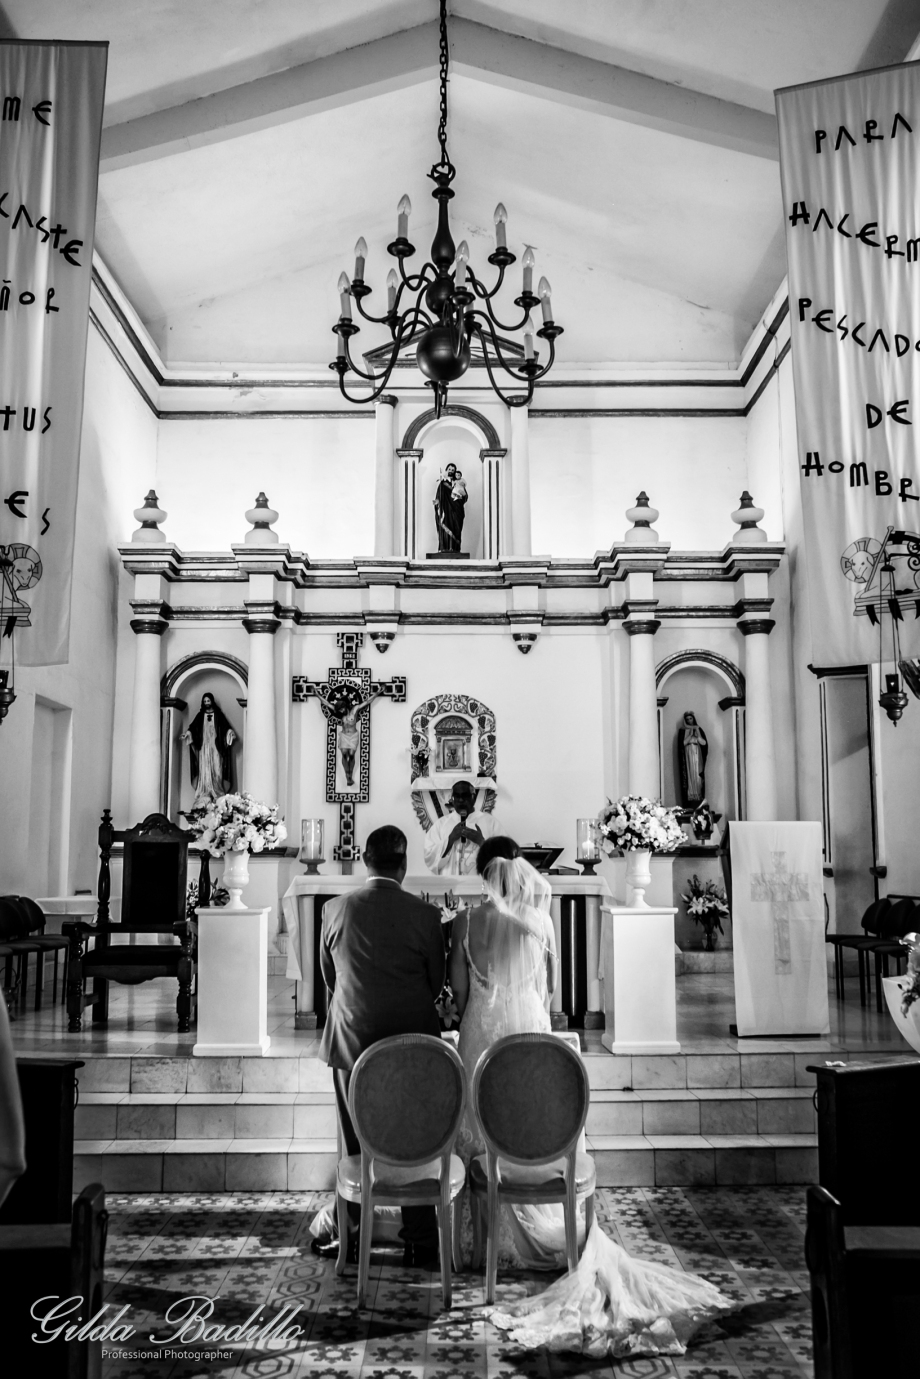 2_wedding_photographer_cabo_san_lucas_barcelo_gran_faro